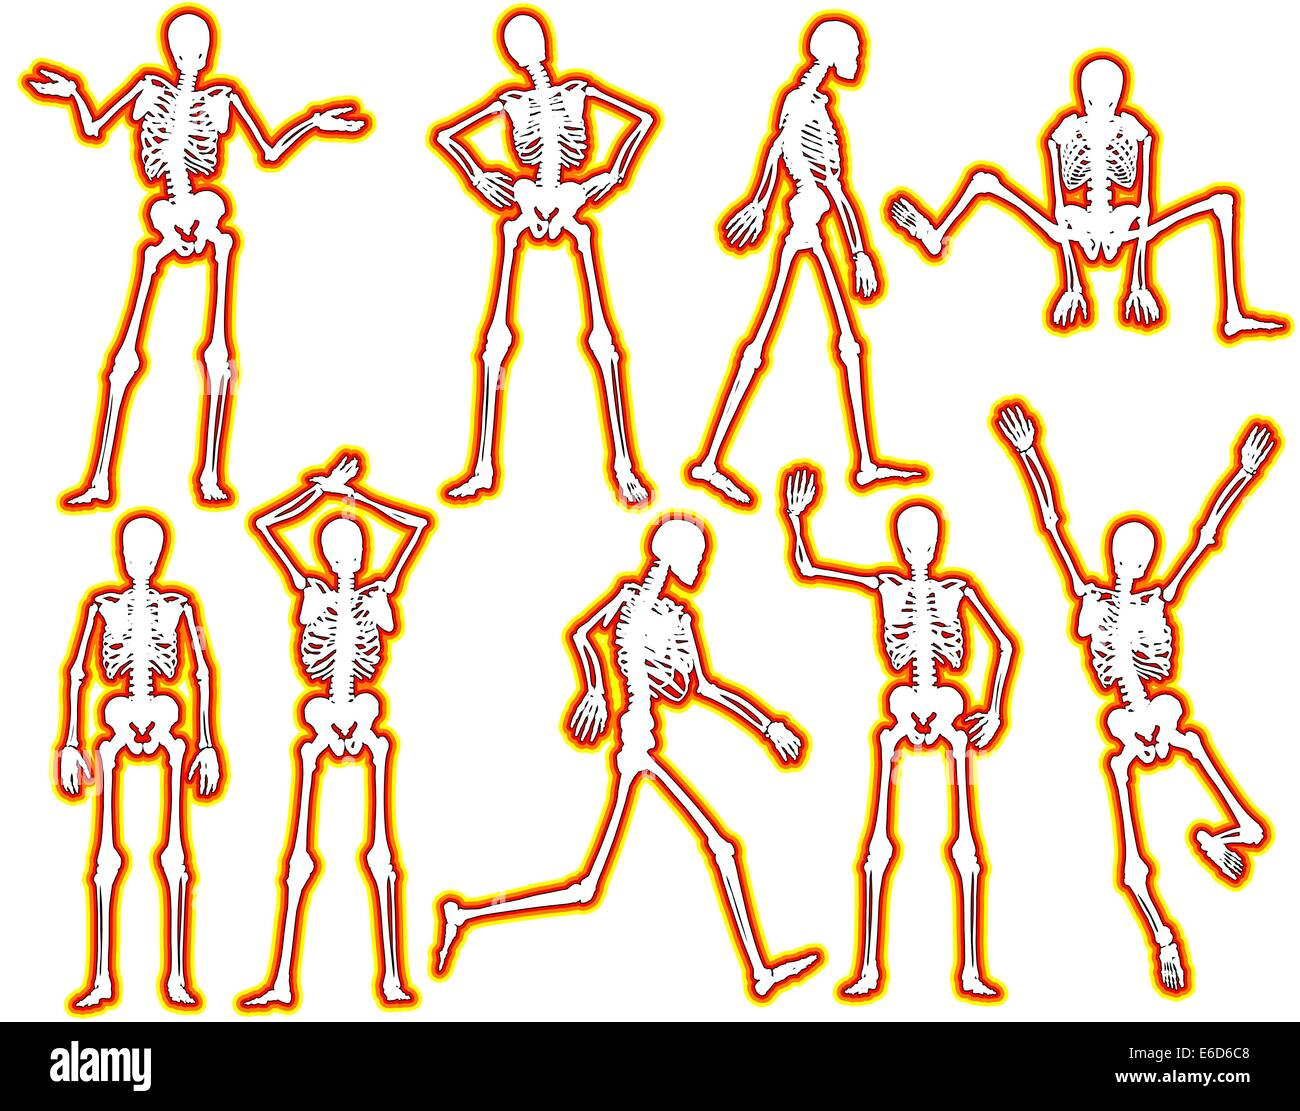 Set of editable vector skeleton outlines with a glowing edge - Stock Vector